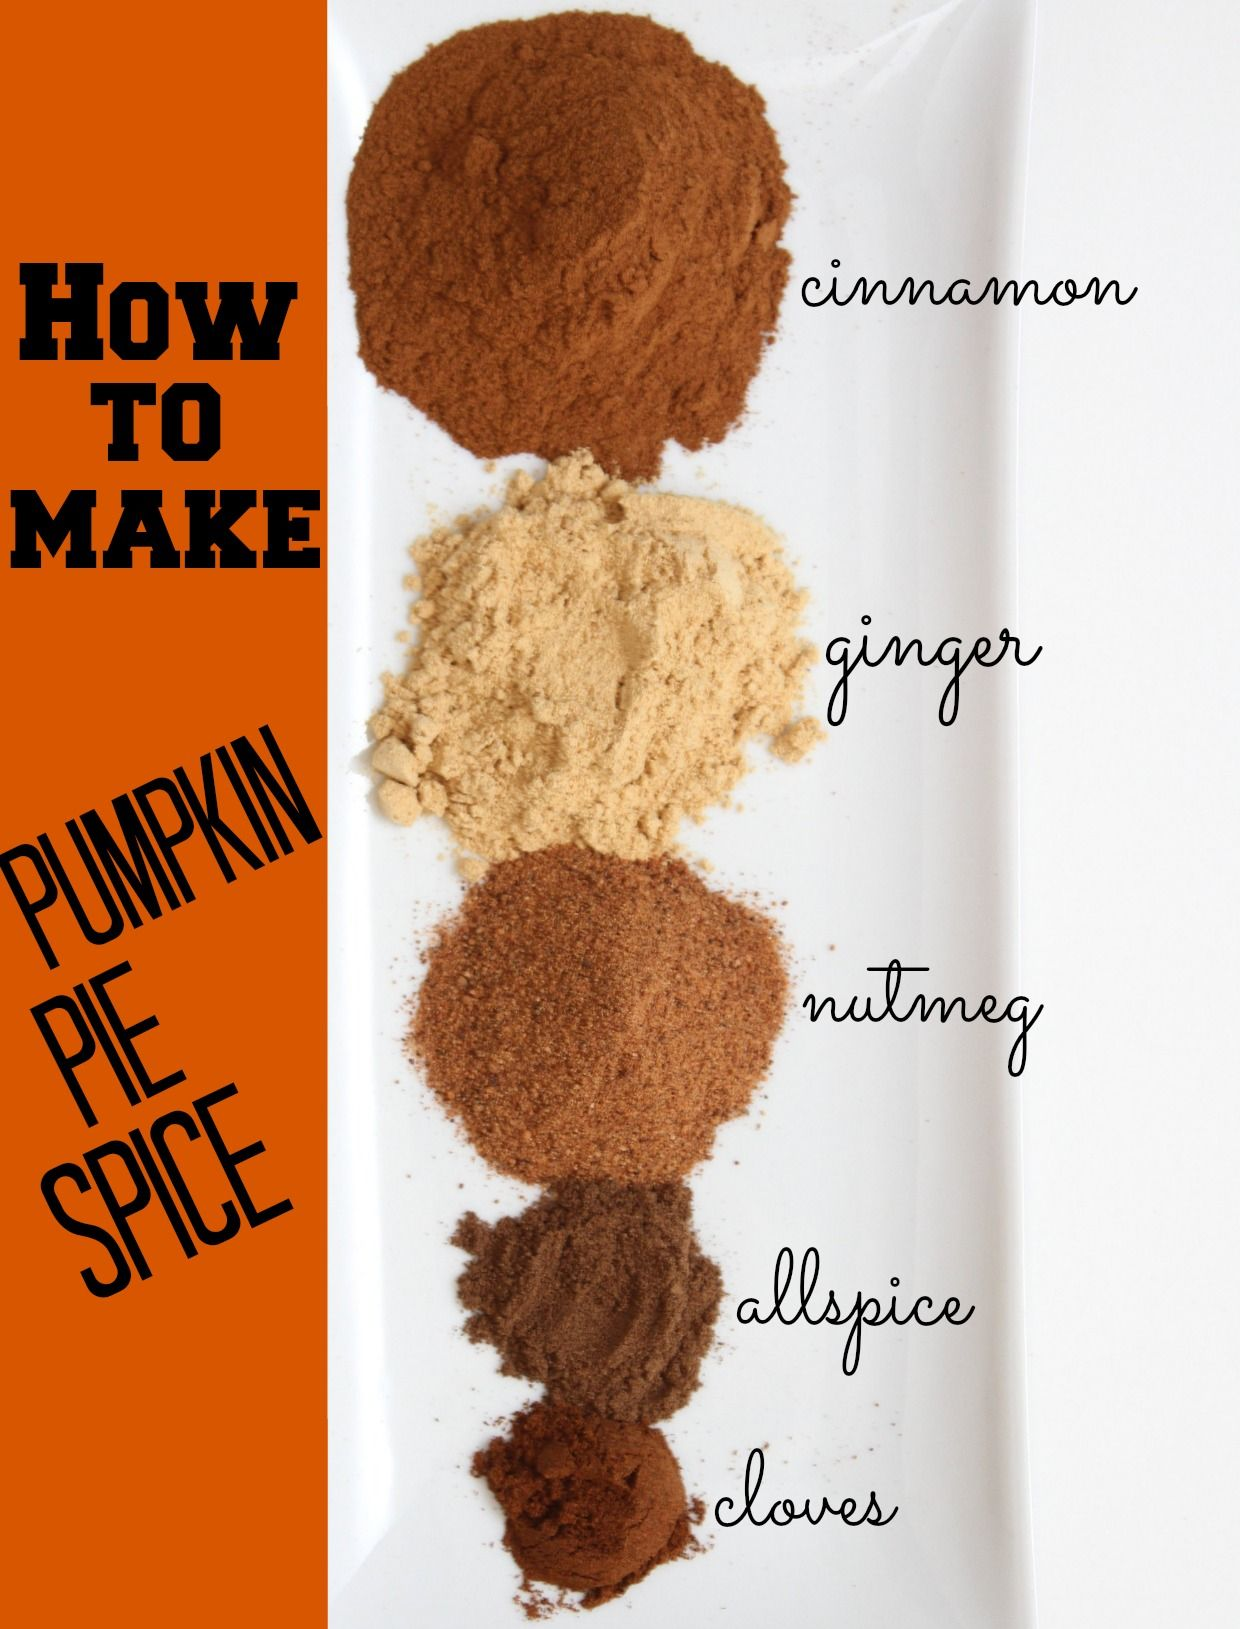 2 Tablespoons Cinnamon 1 Tablespoon Ground Ginger 2 Tsp Ground Nutmeg 1 2 Tsp Allspice 1 2 Tsp Ground Cloves Pumpkin Pie Spice Recipes Homemade Spices